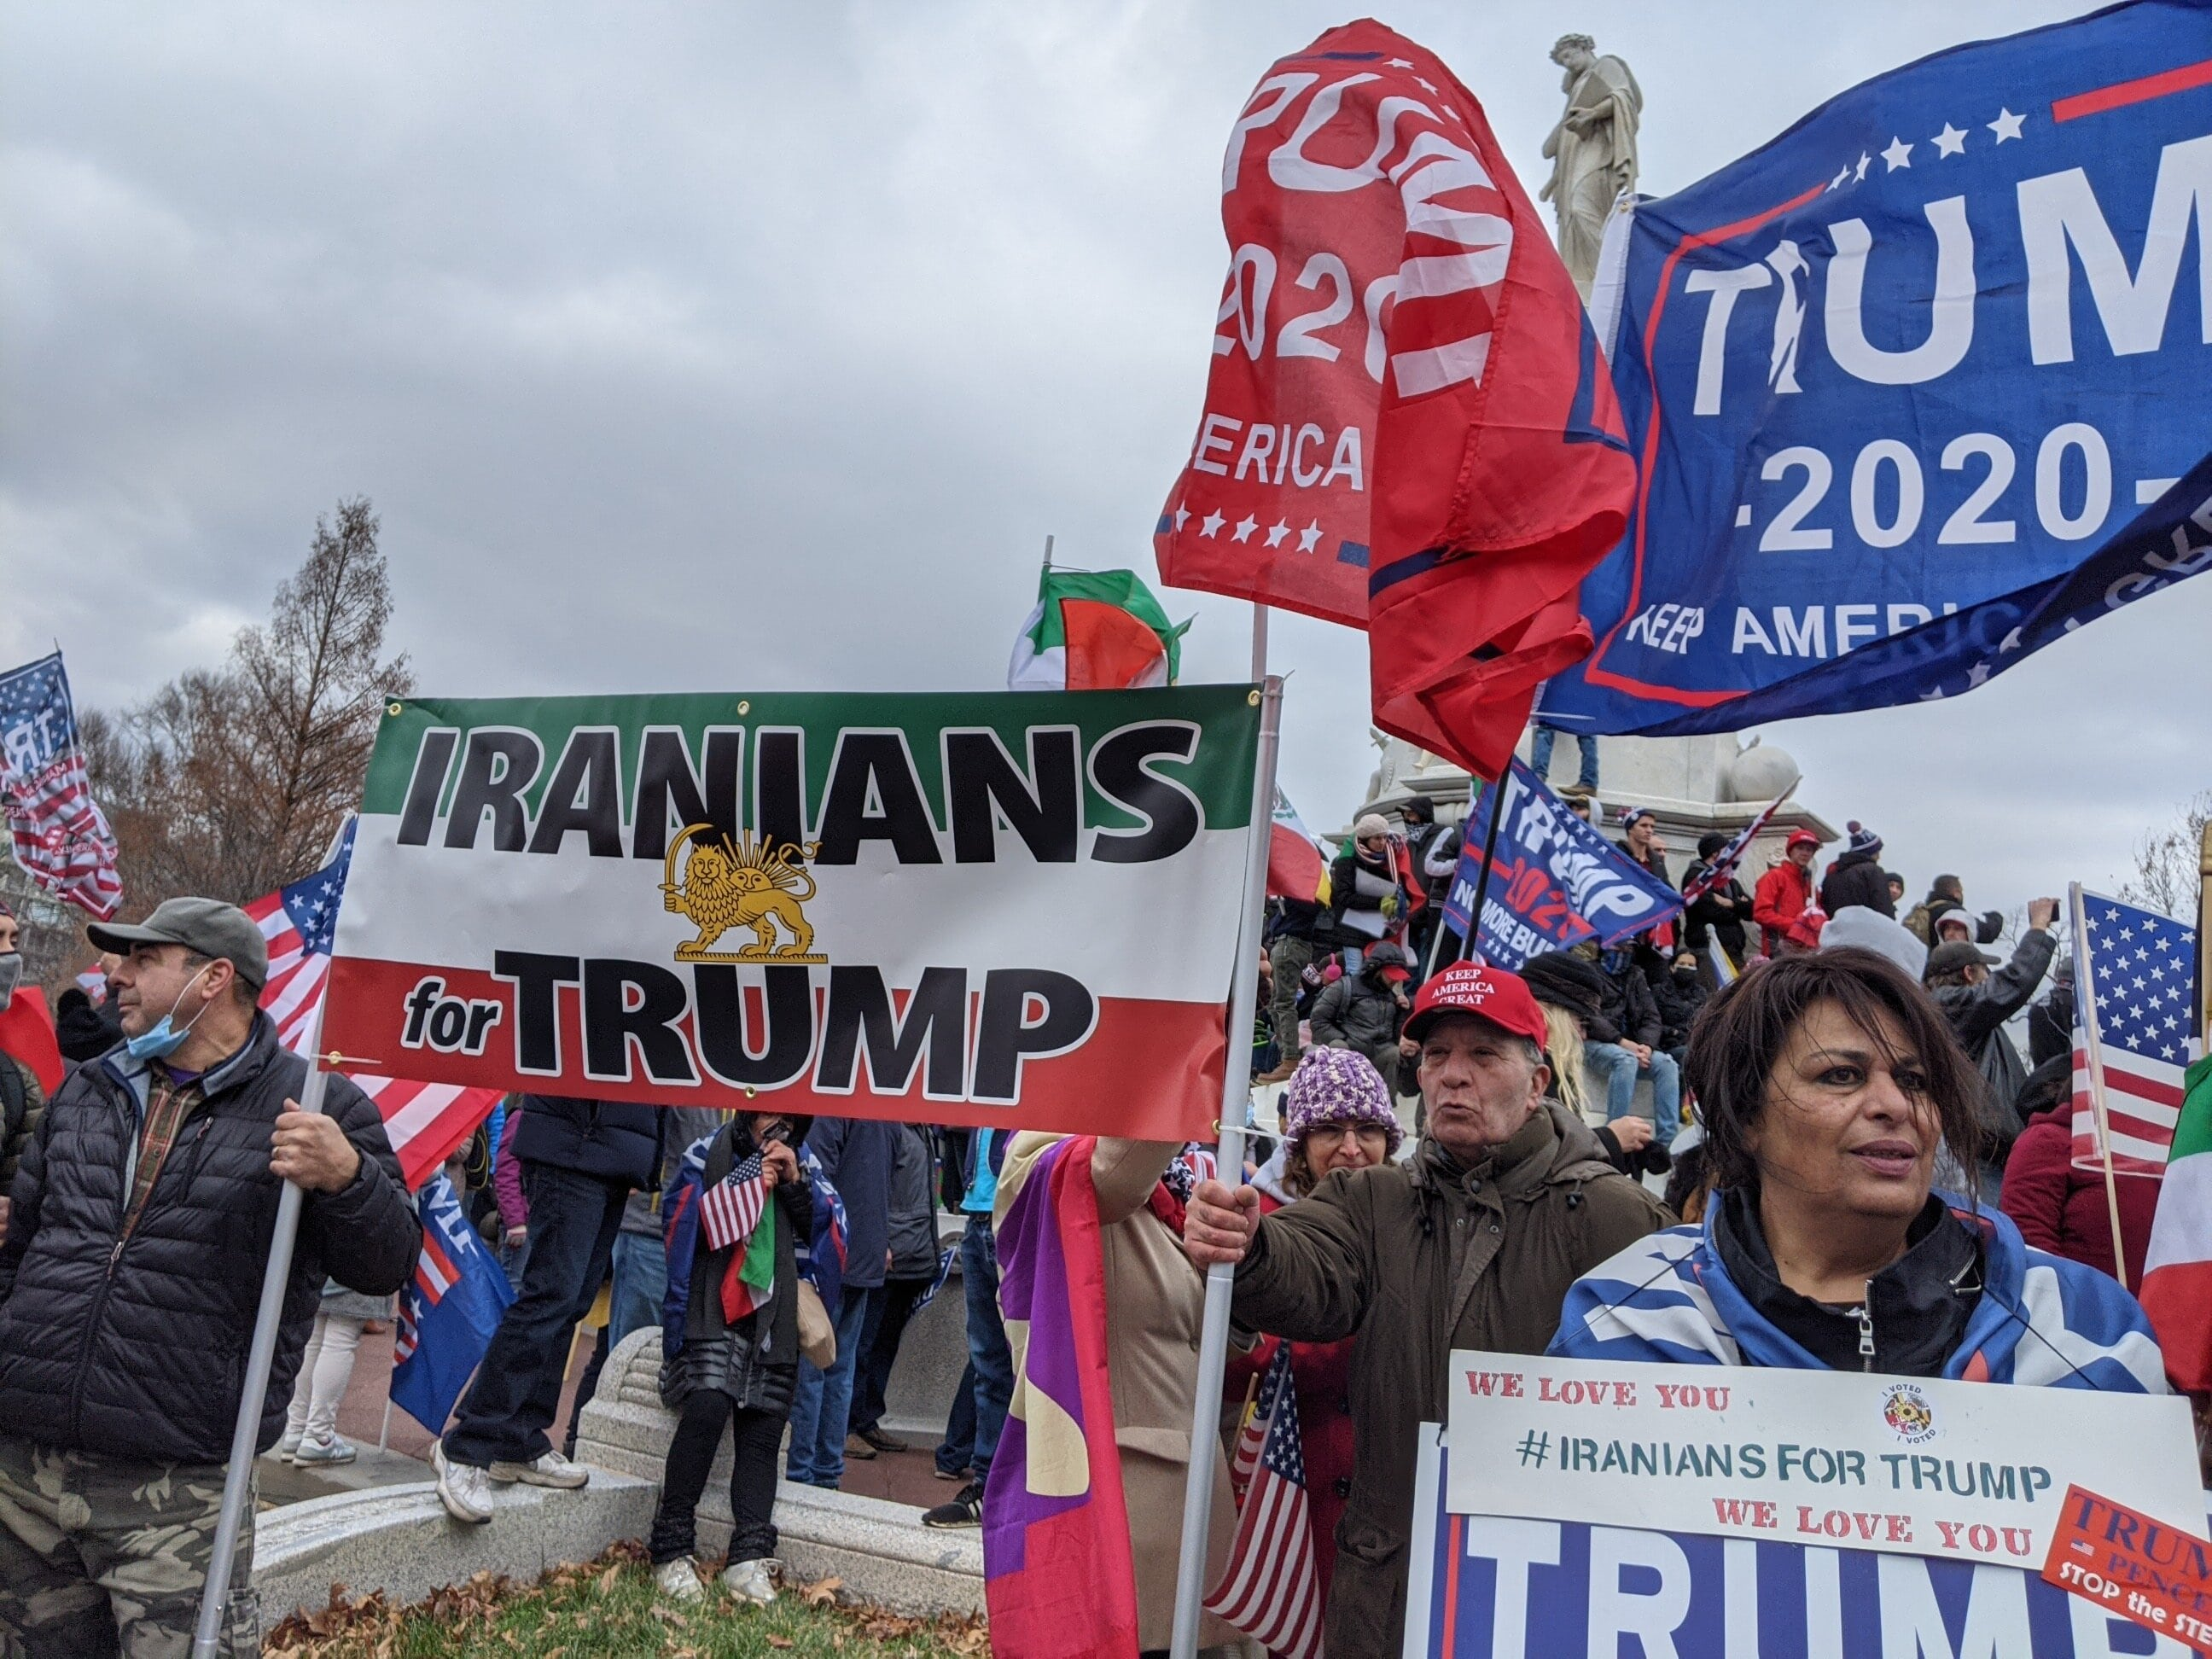 Iranians for Trump banner